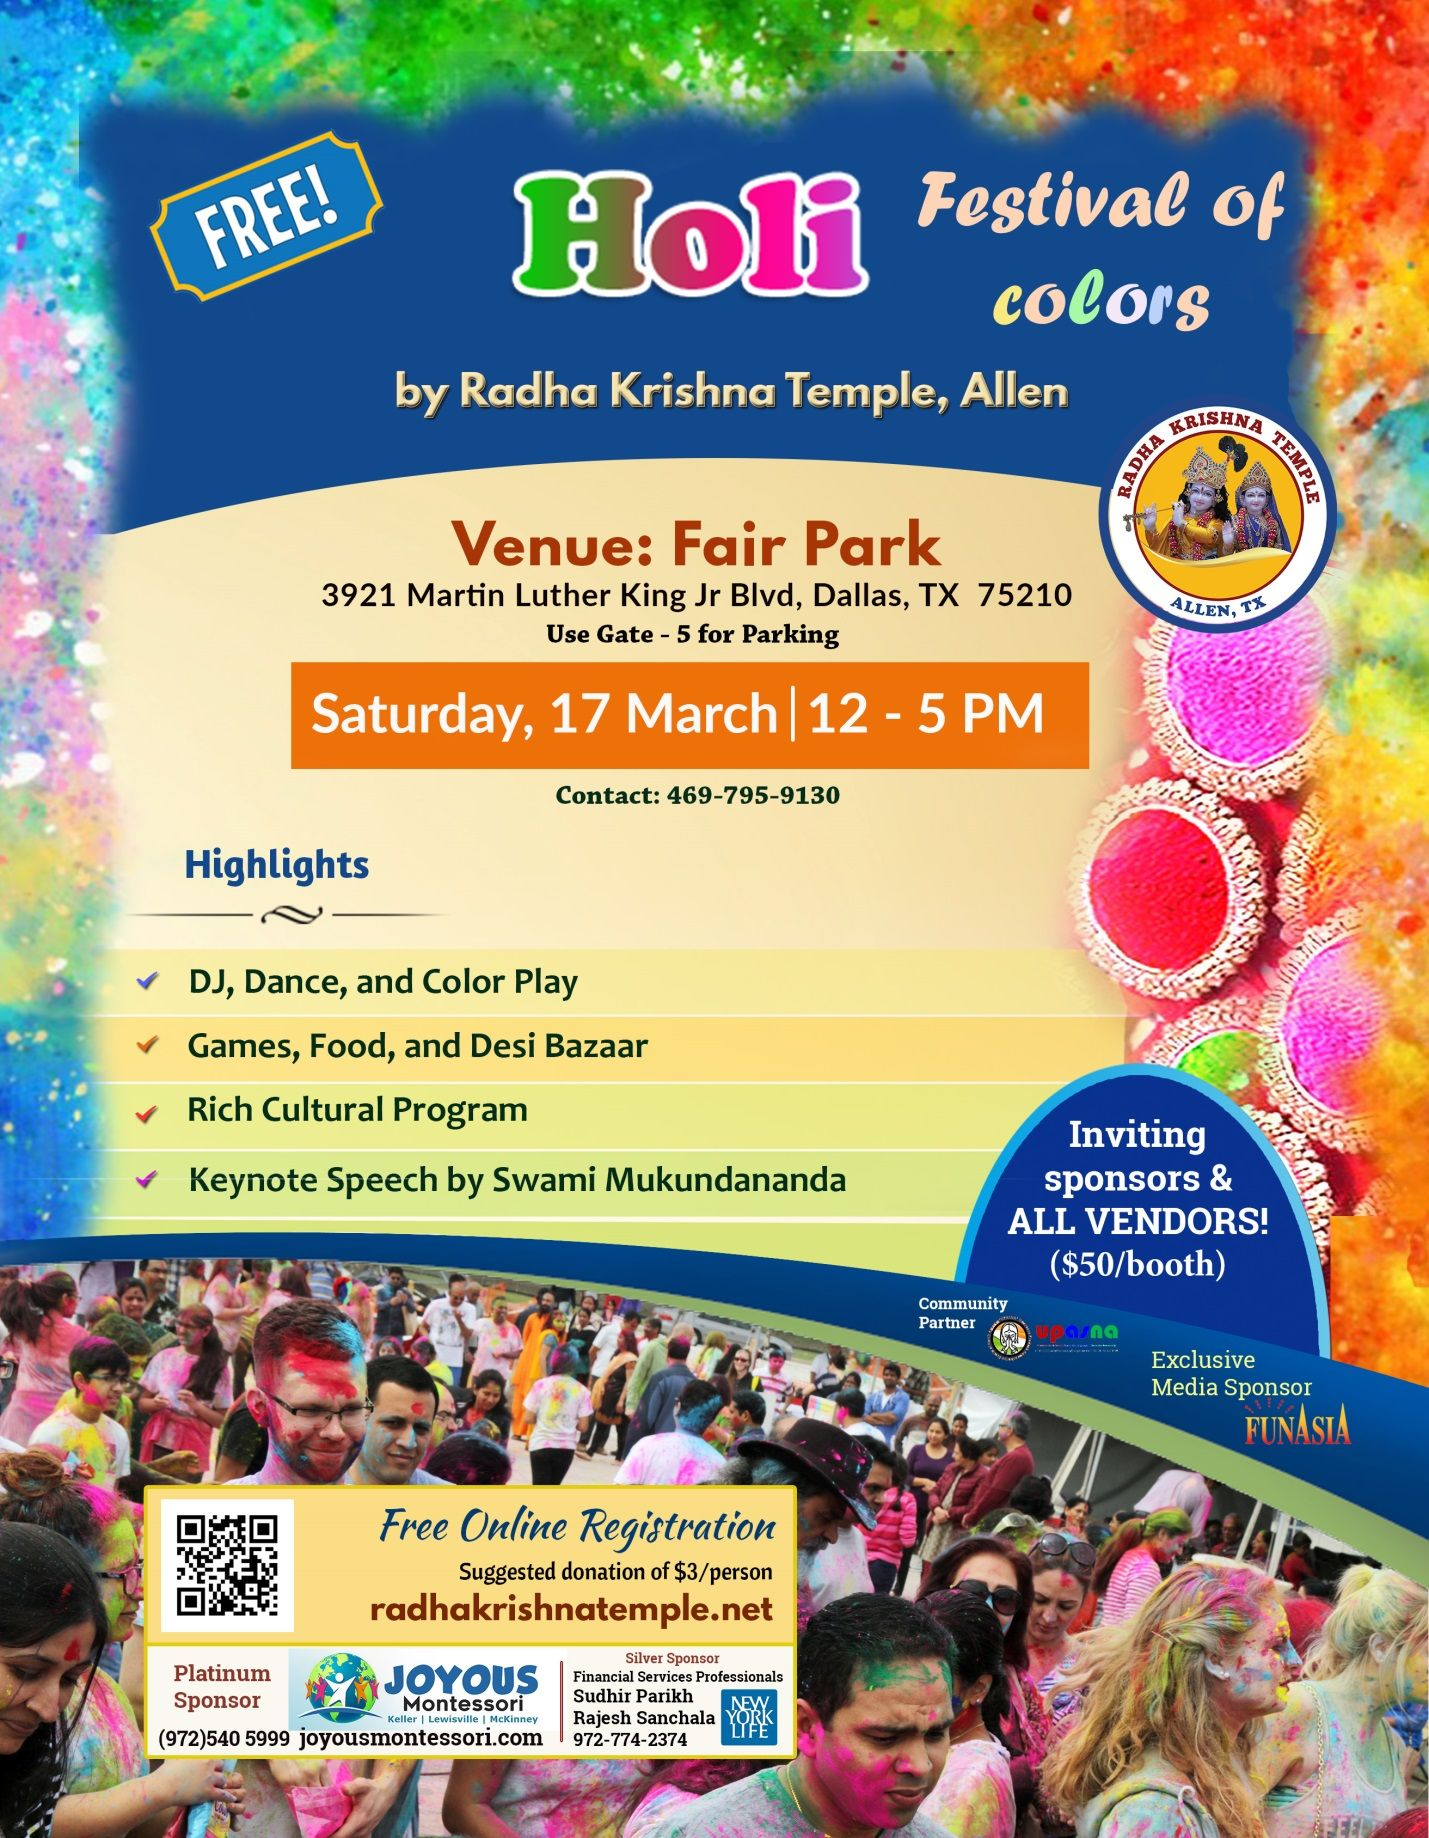 Dallas HoliFest @Fair Park *FREE* Festival of Colors by Radha Krishna Temple of